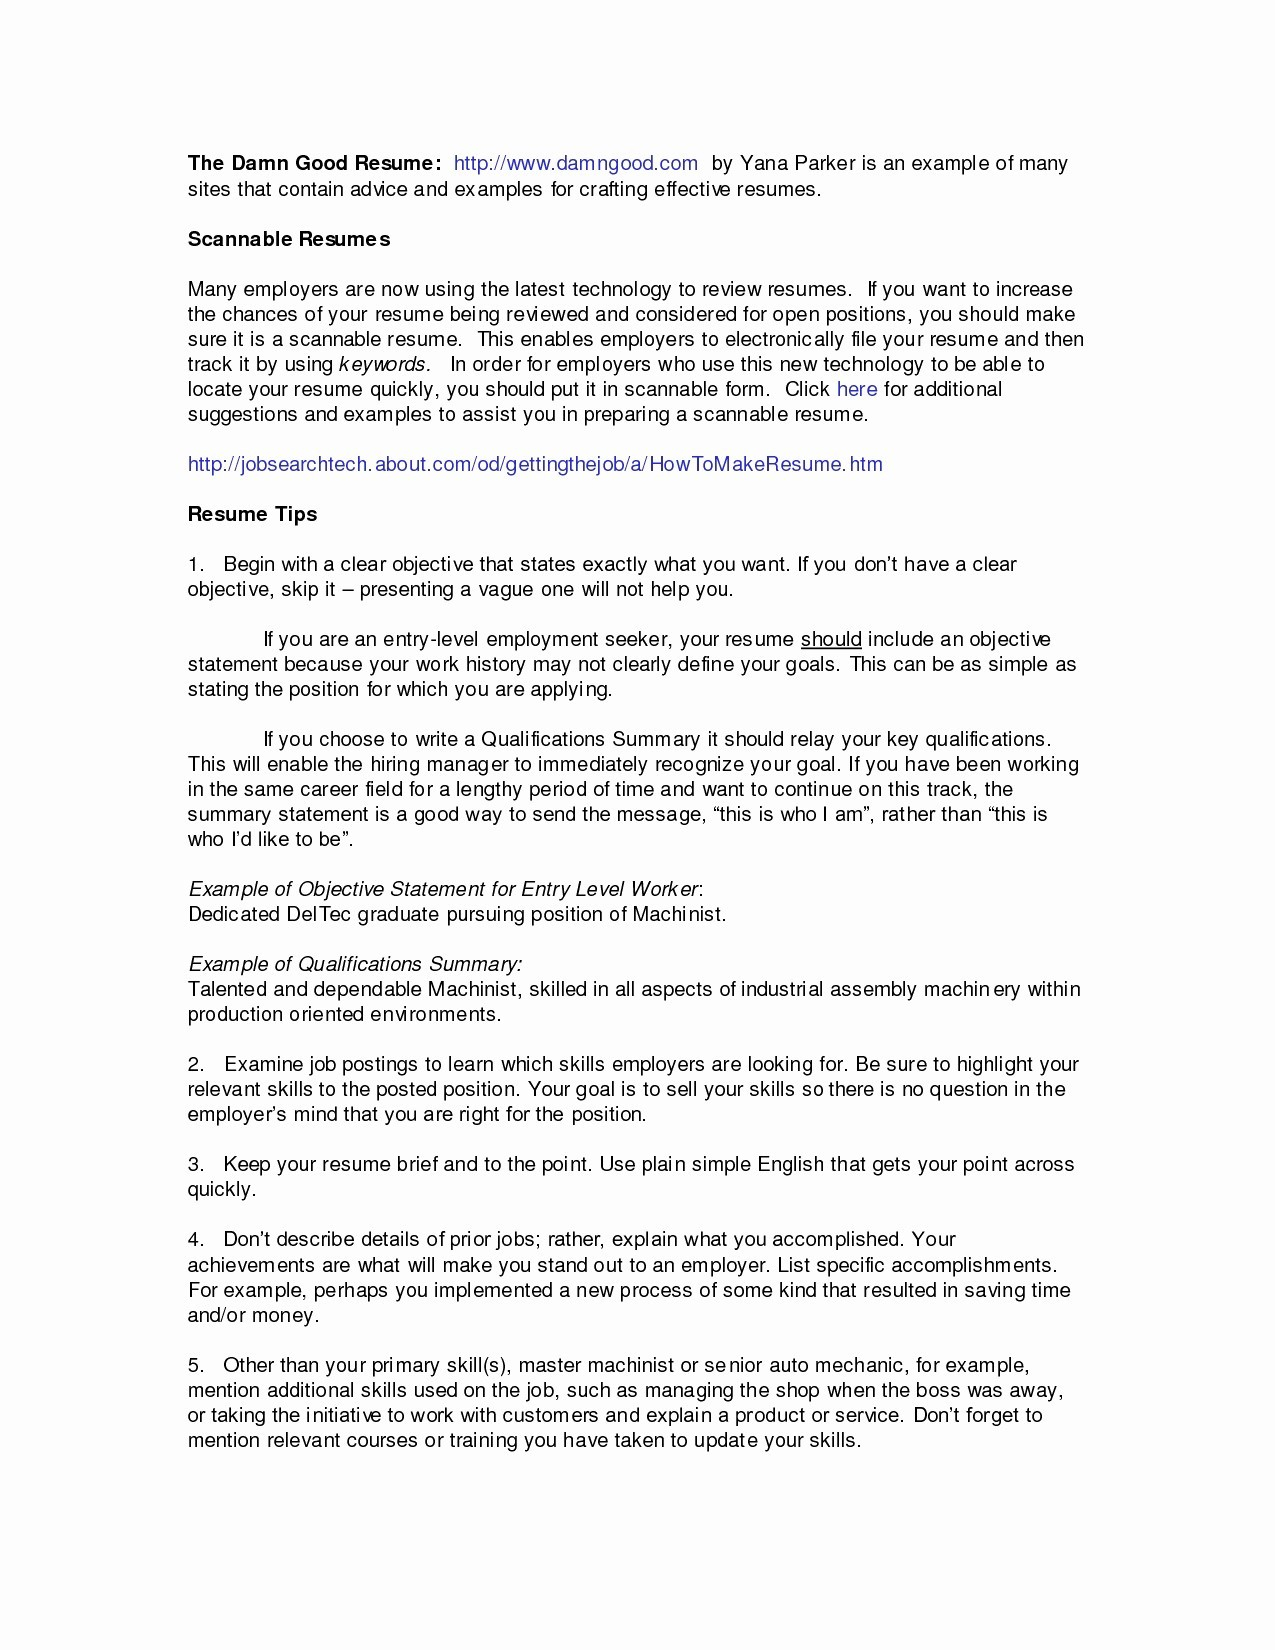 resume writer san diego Collection-Resume Writer San Diego 21 Resume Writer San Diego 2-a